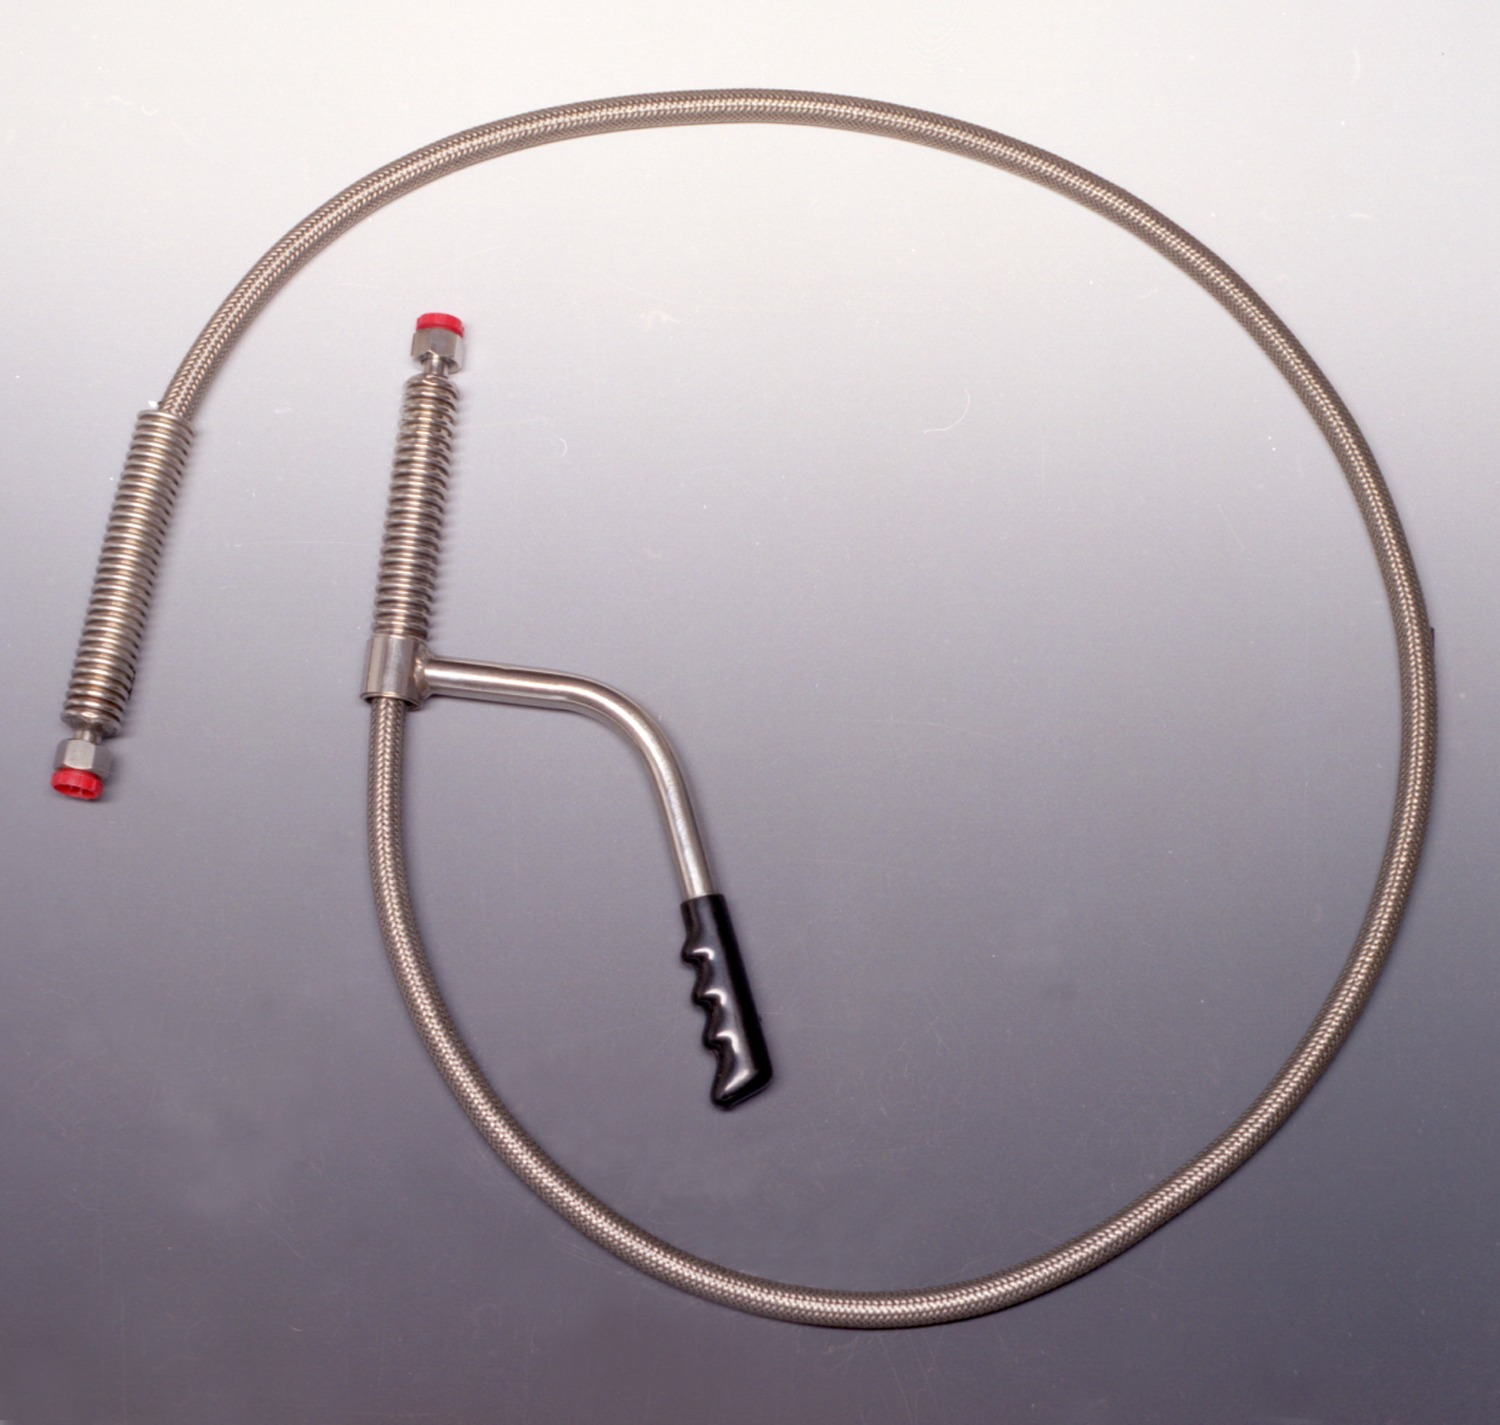 hose with handle.jpg